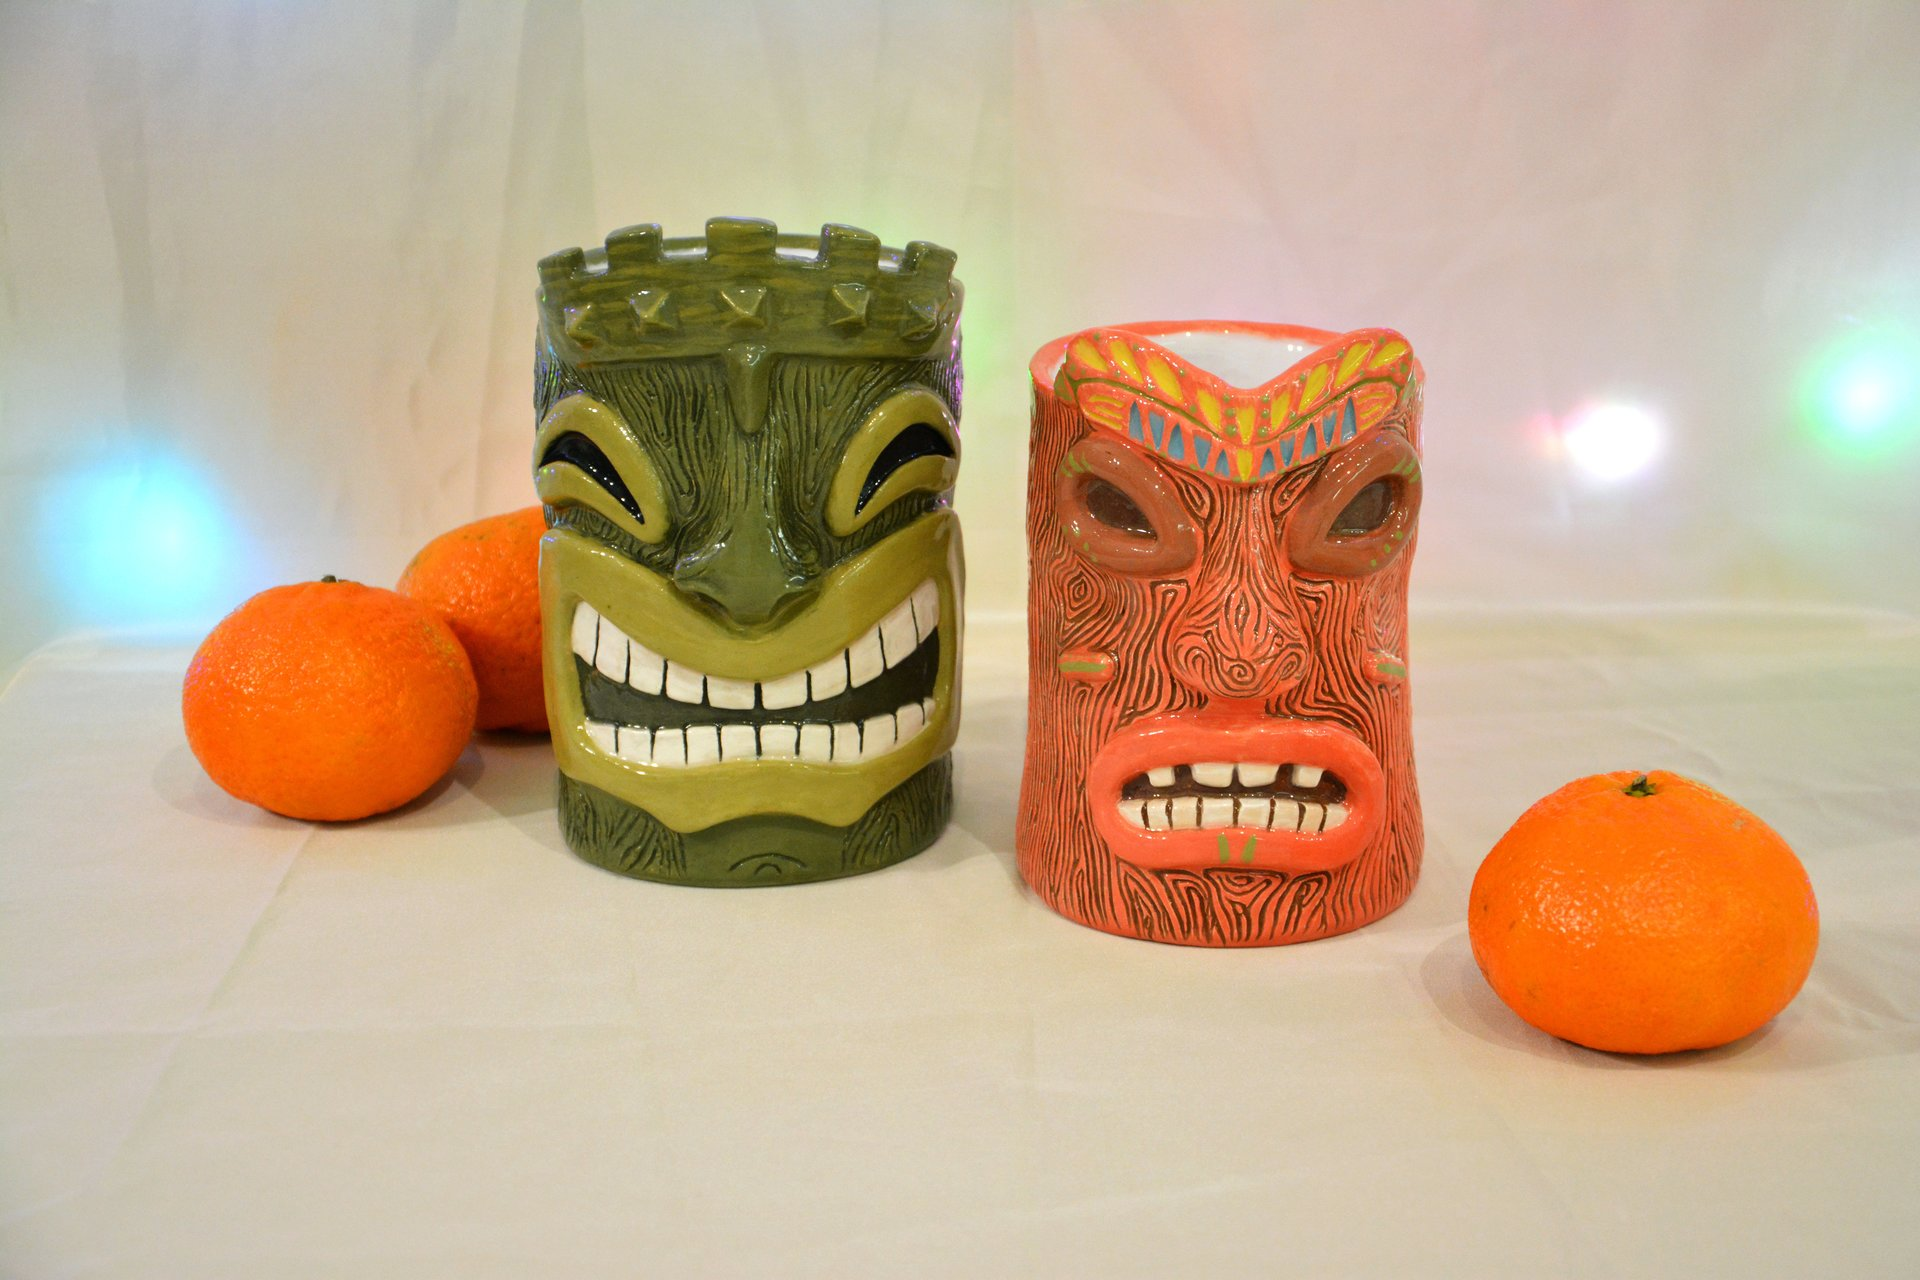 Huge Tiki Glass, color- green, height - 14 cm, volume - 0,7 l, photo 5 of 5.